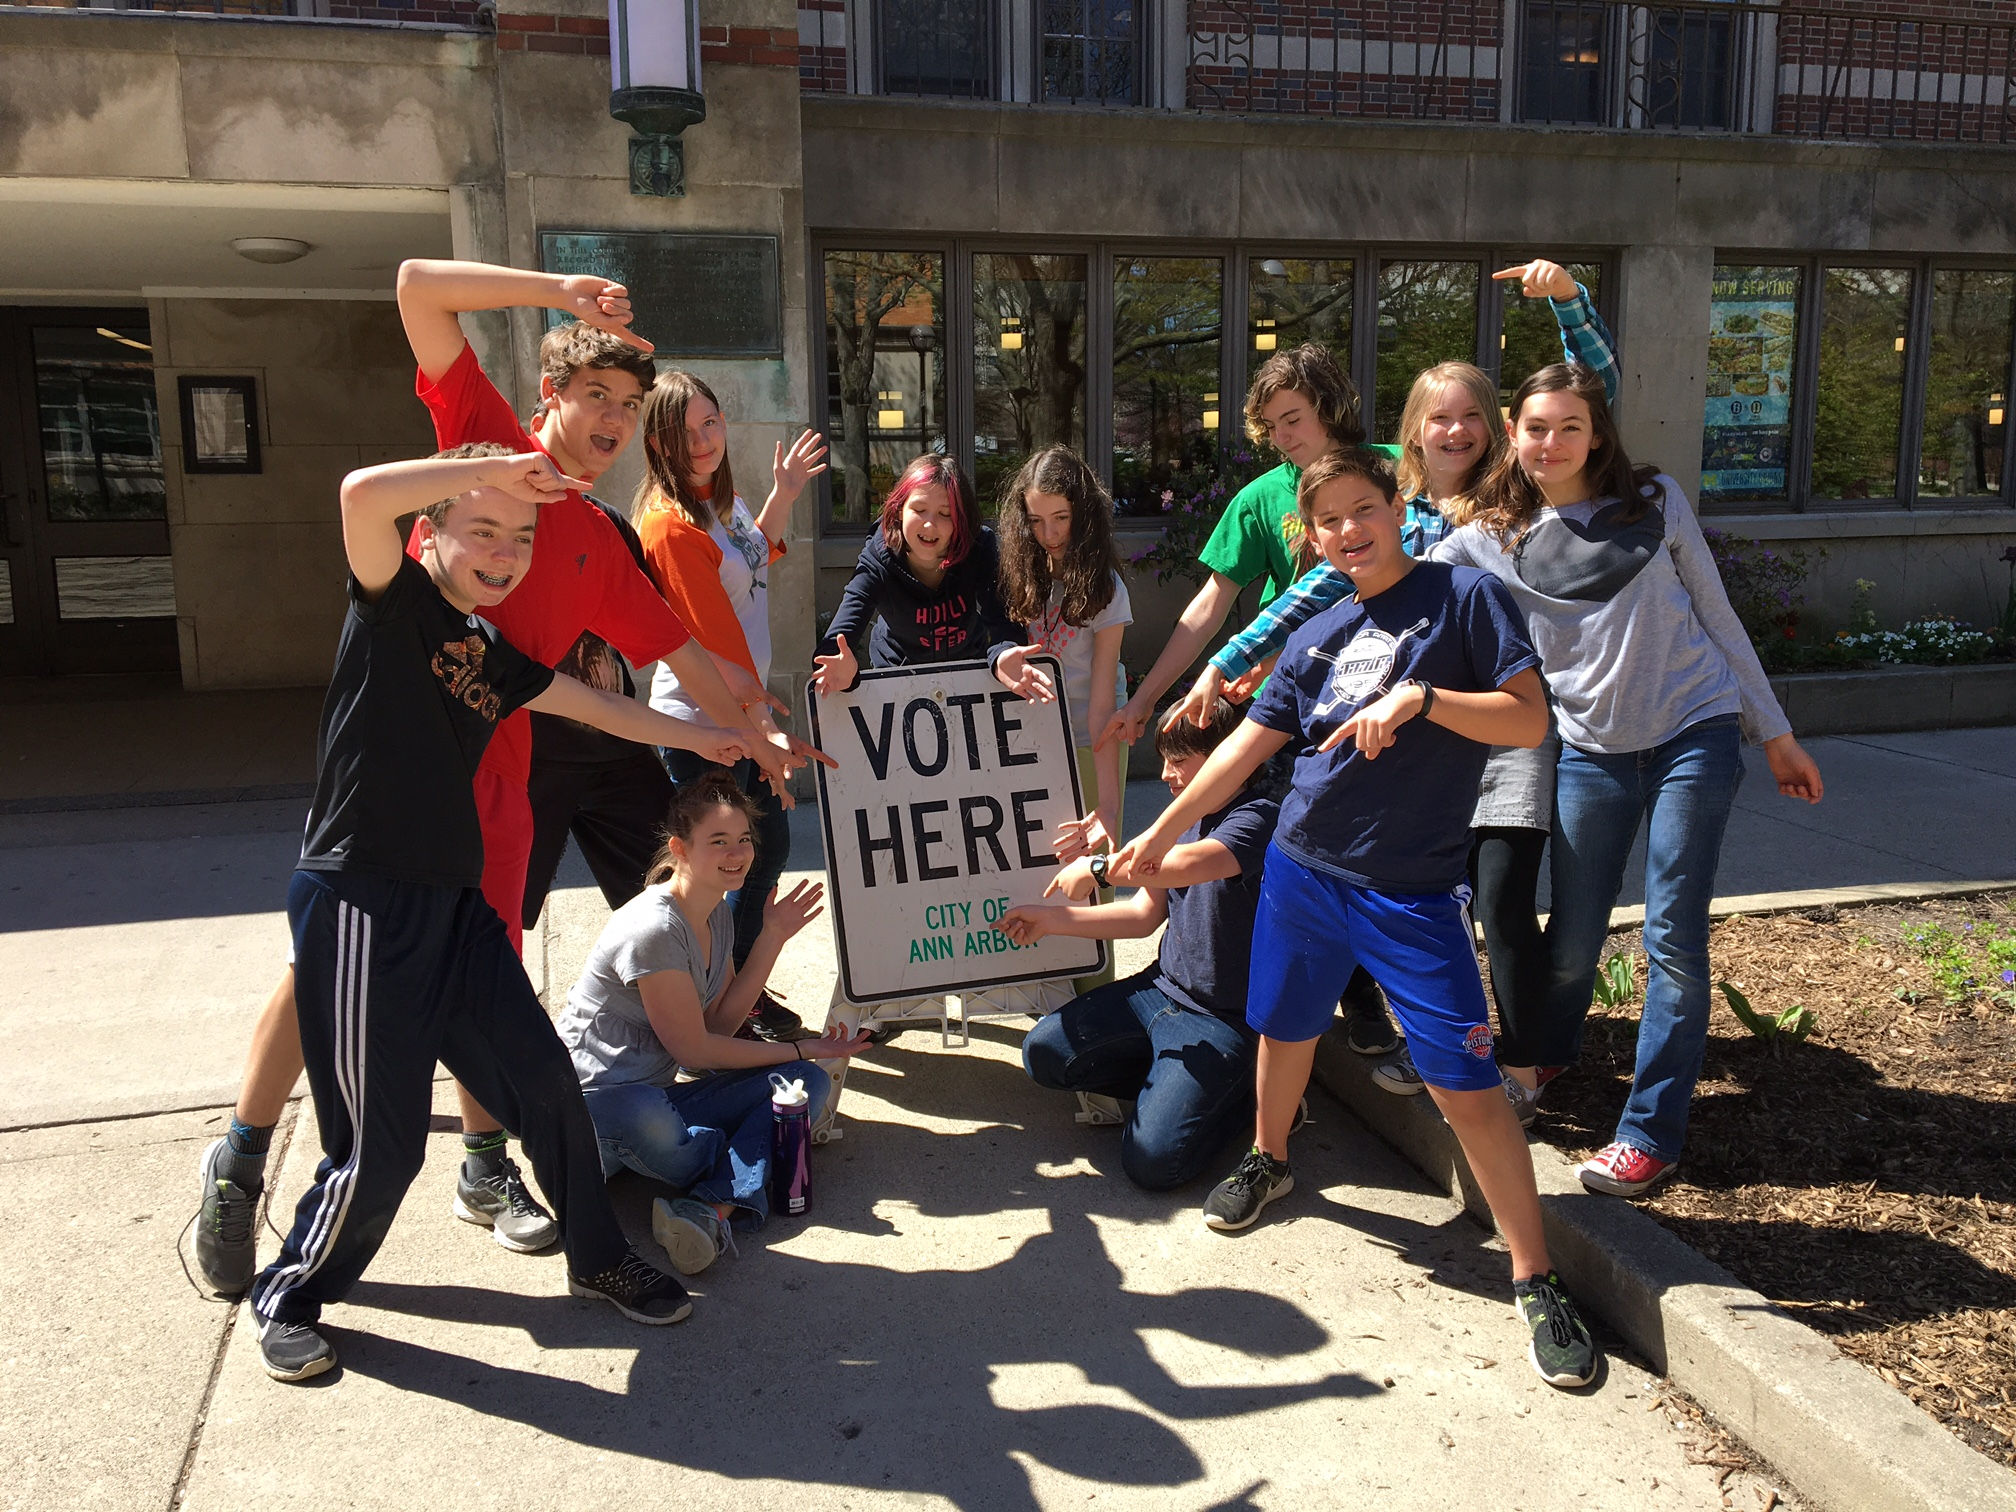 Summers-Knoll students outside of the Michigan Union on Election Day (May 3, 2016).